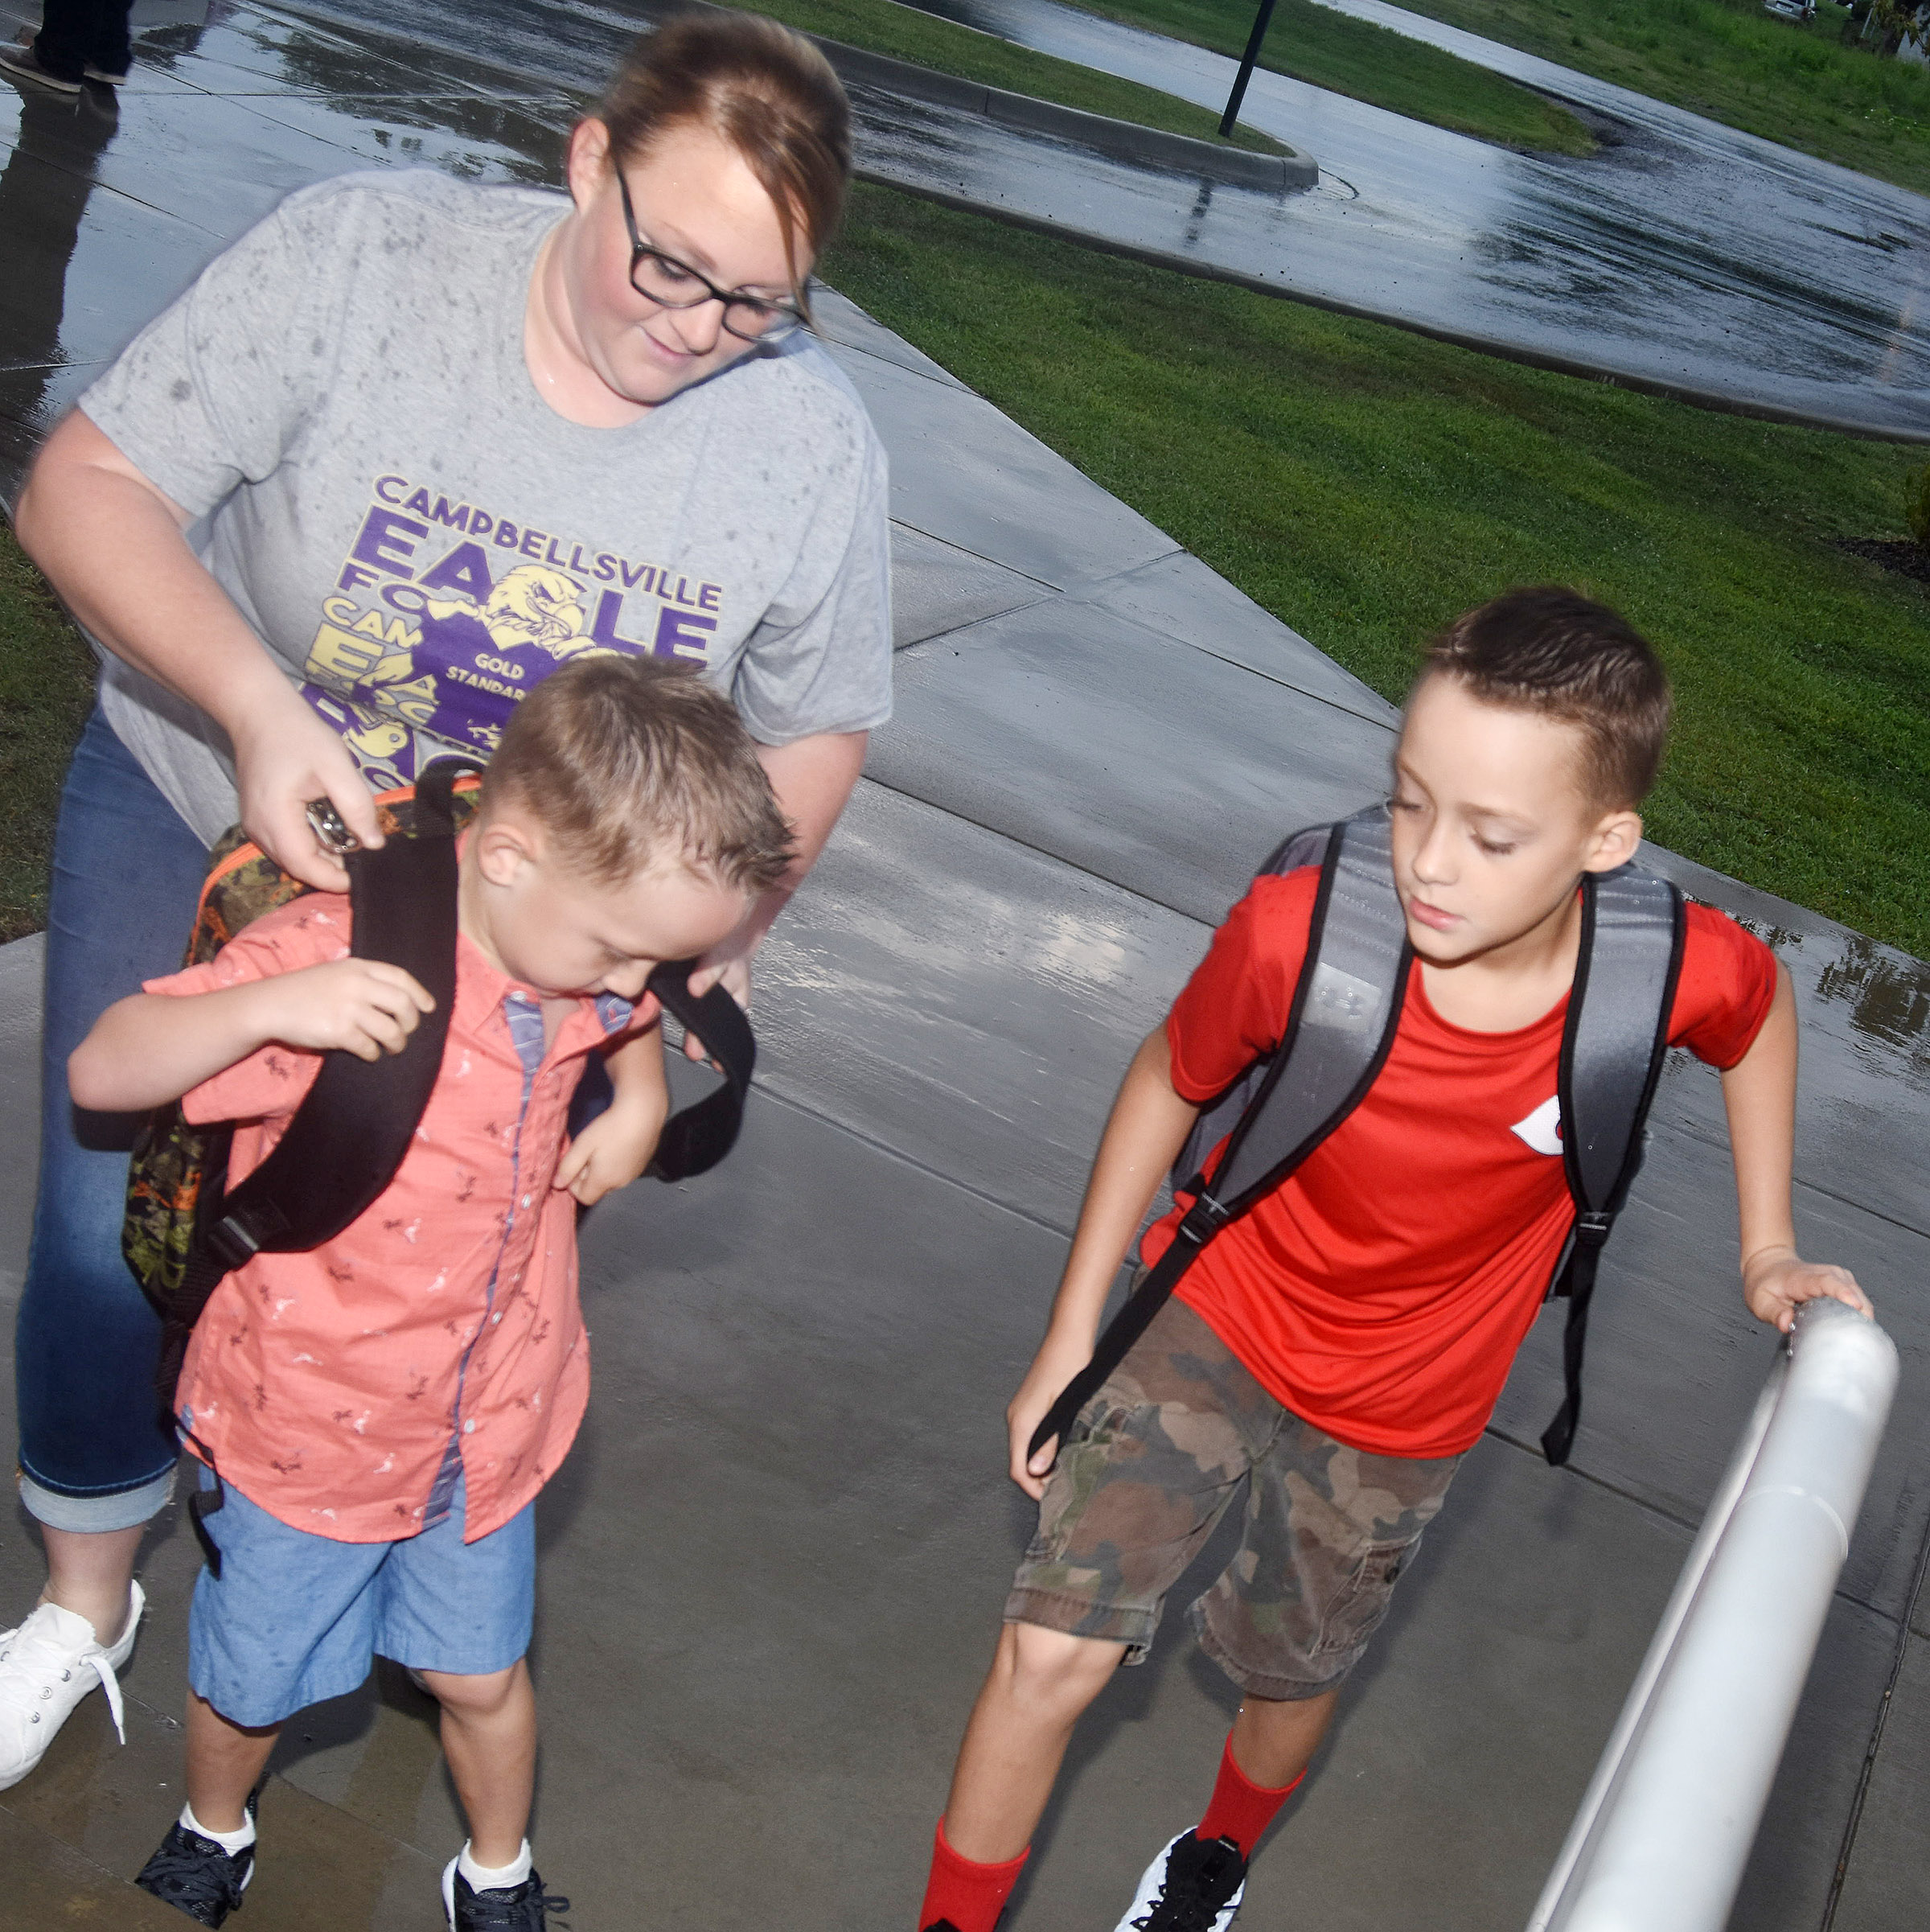 Madelyn Wise helps her sons, Connor, a kindergartener, and Caysen, a fifth-grader, as they start school at Campbellsville Elementary School.